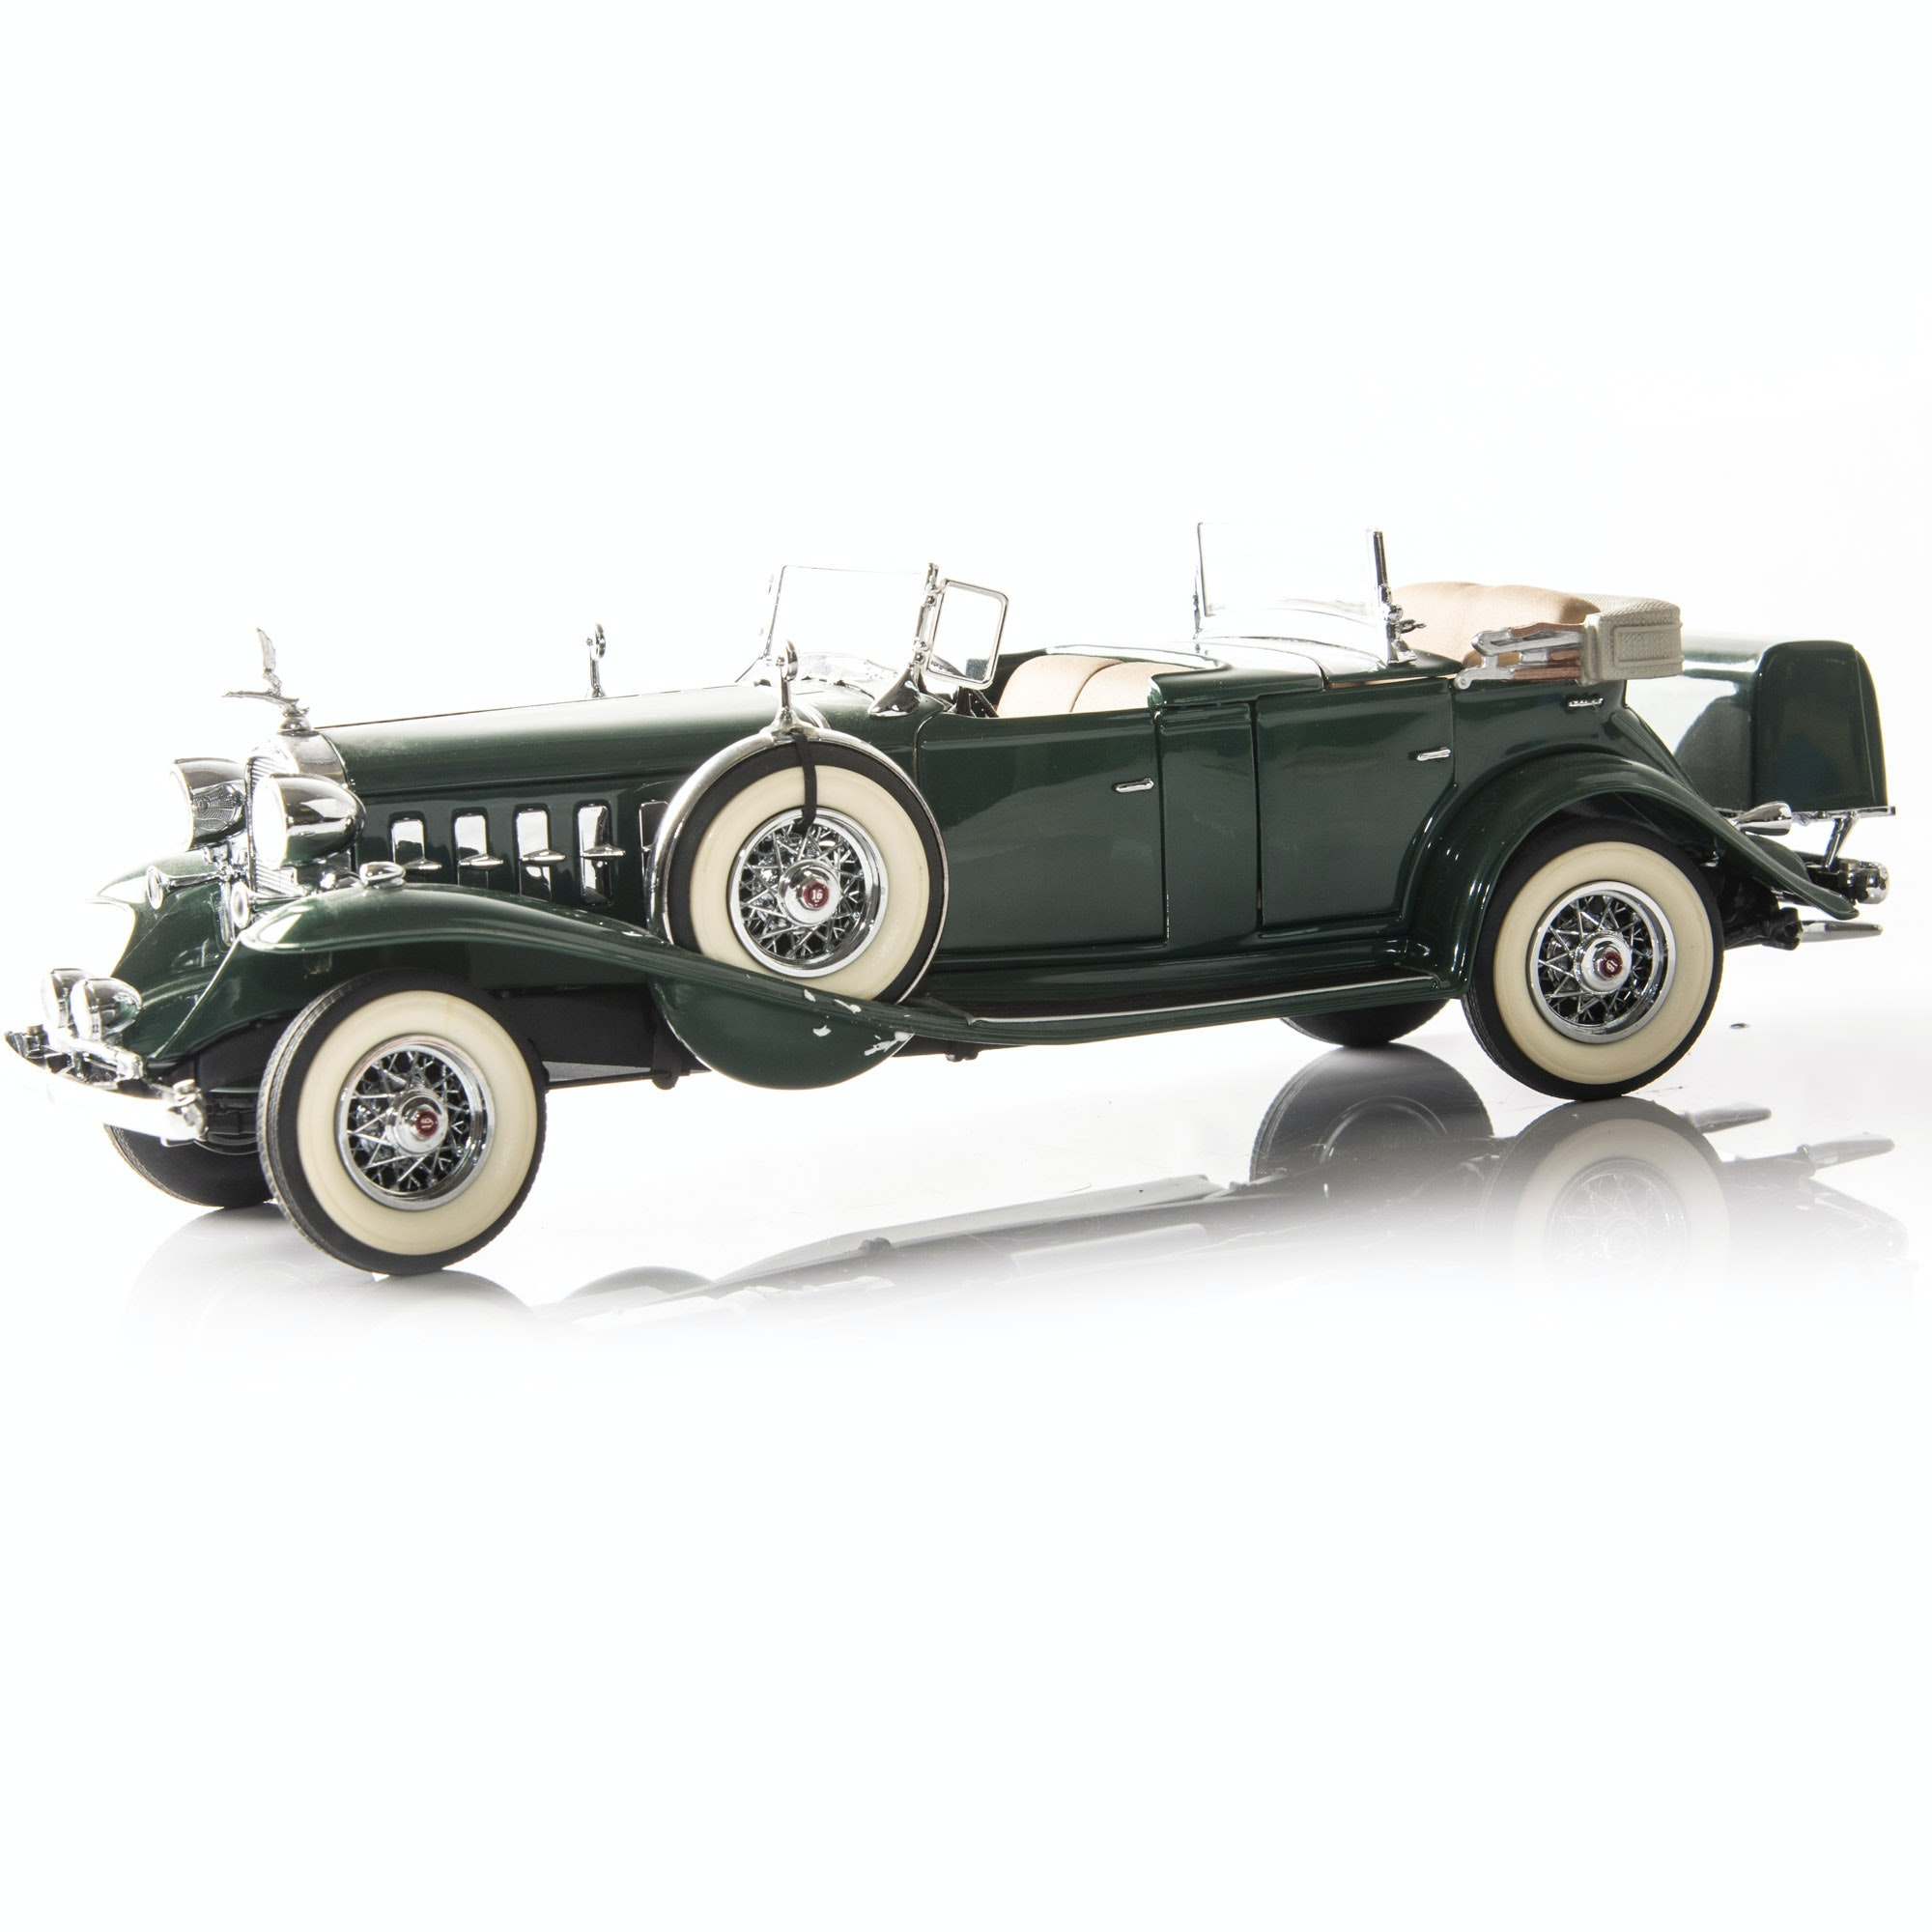 Danbury Mint Die-Cast Model 1932 Cadillac V-16